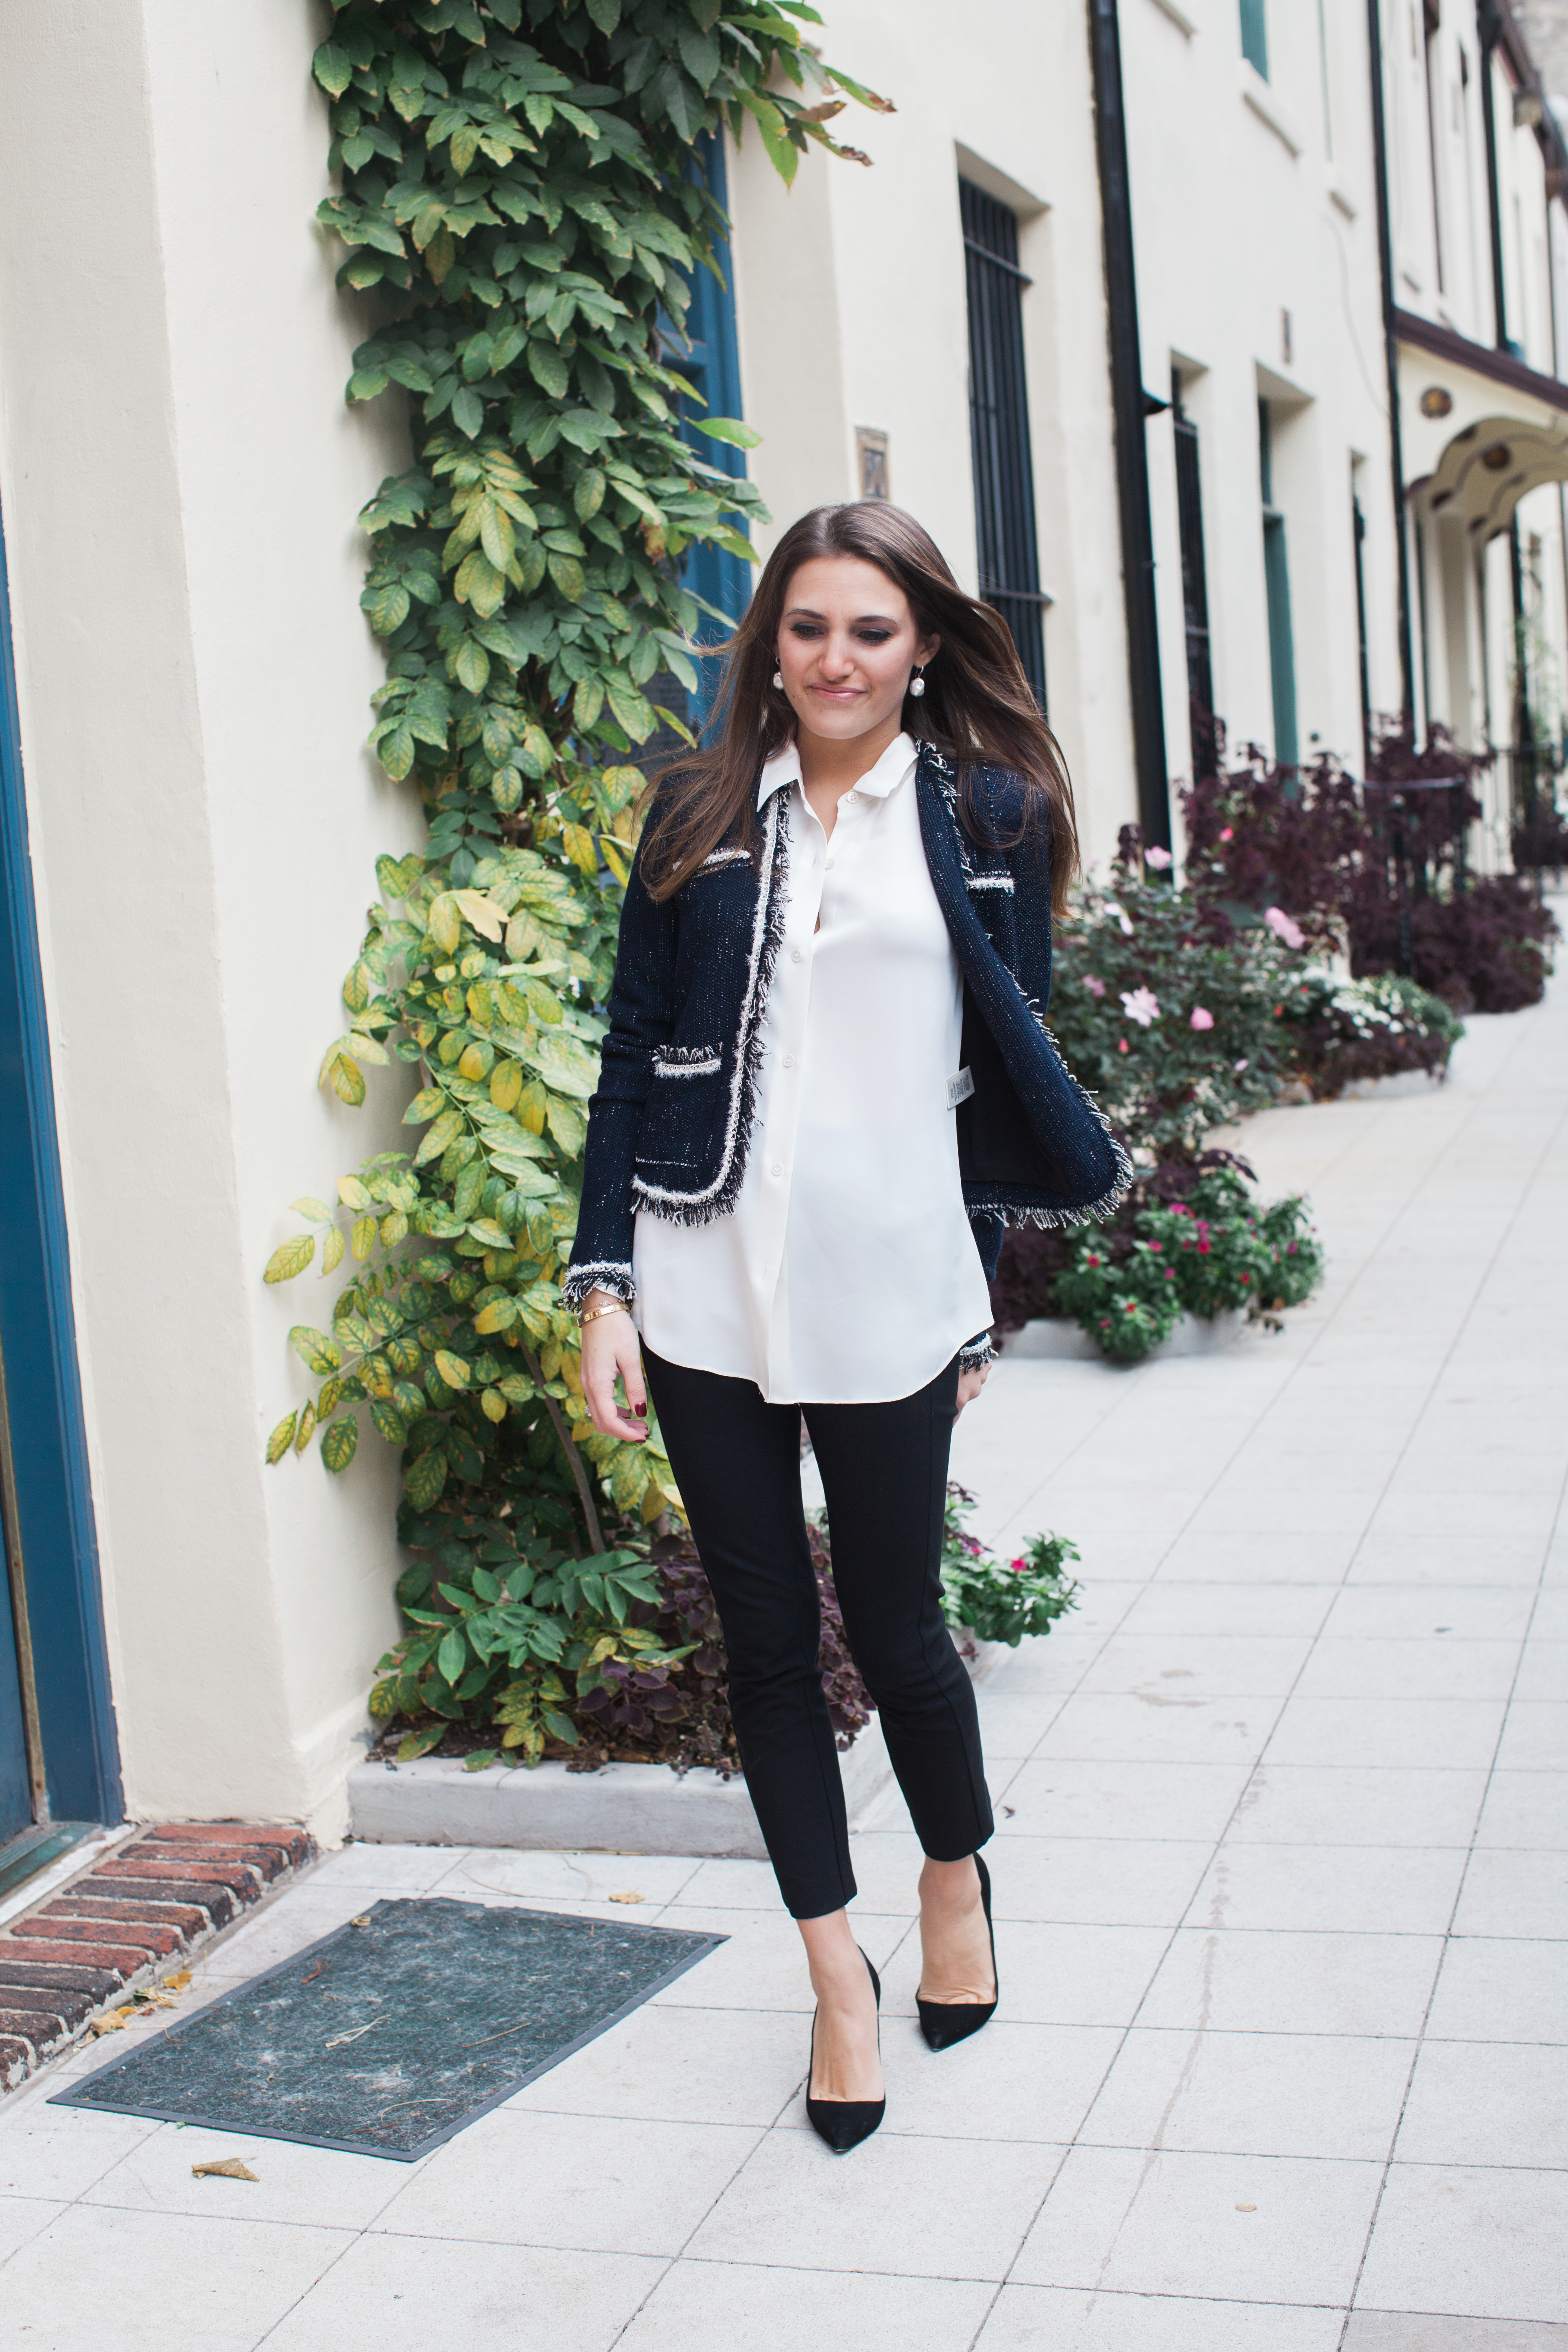 The Almost Chanel Blazer That Pencil Skirt